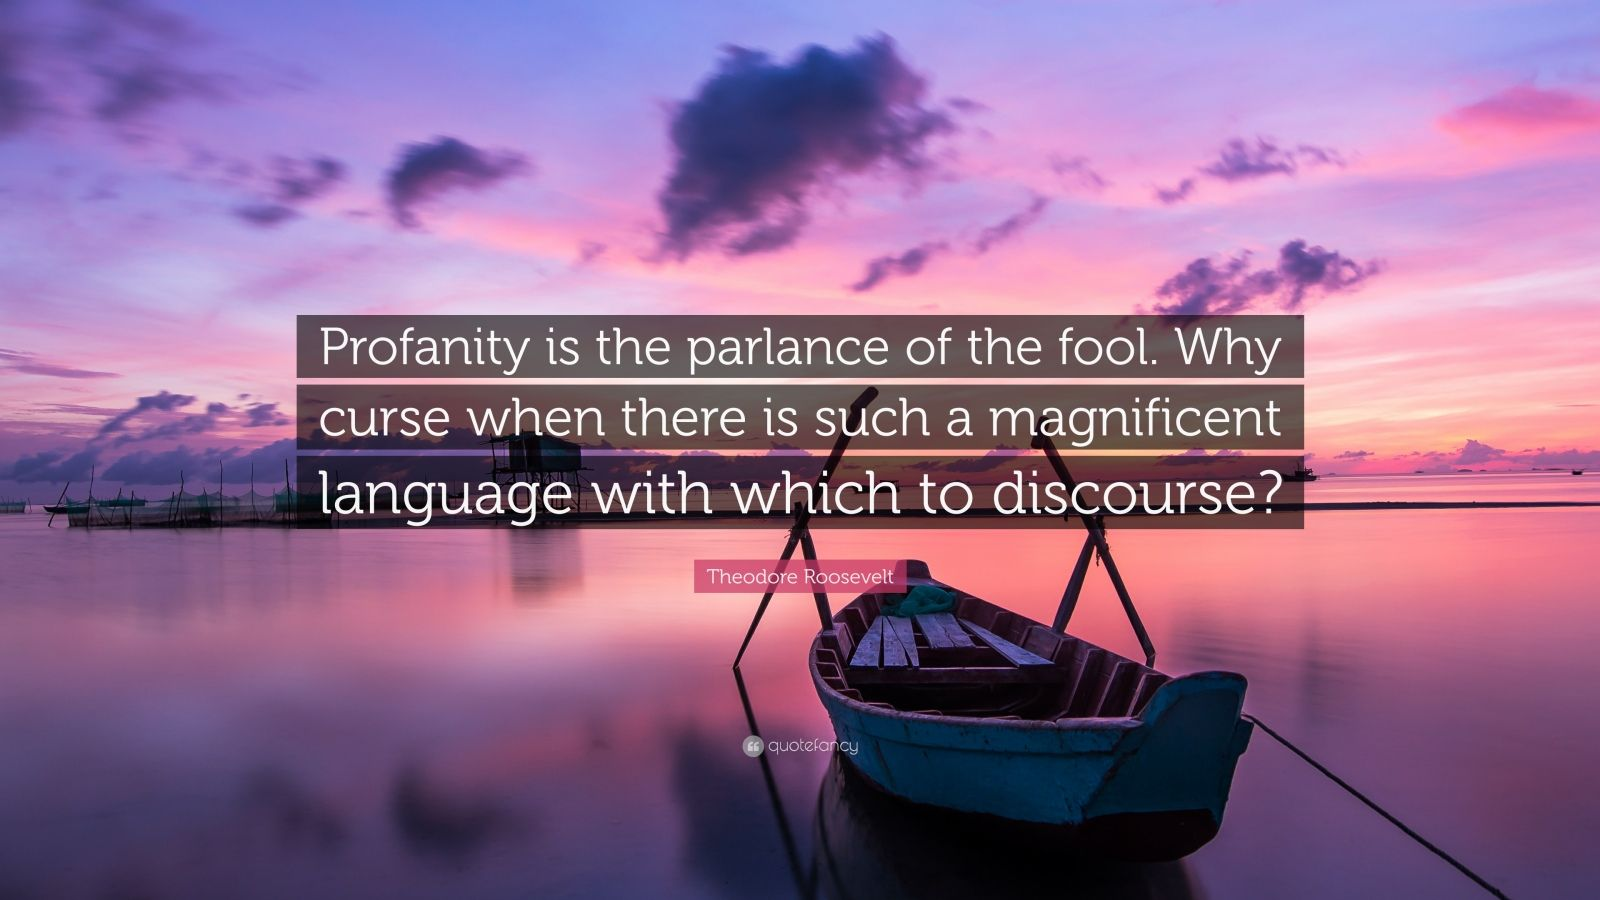 """Theodore Roosevelt Quote: """"Profanity is the parlance of the fool. Why curse when there is such a magnificent language with which to discourse?"""""""